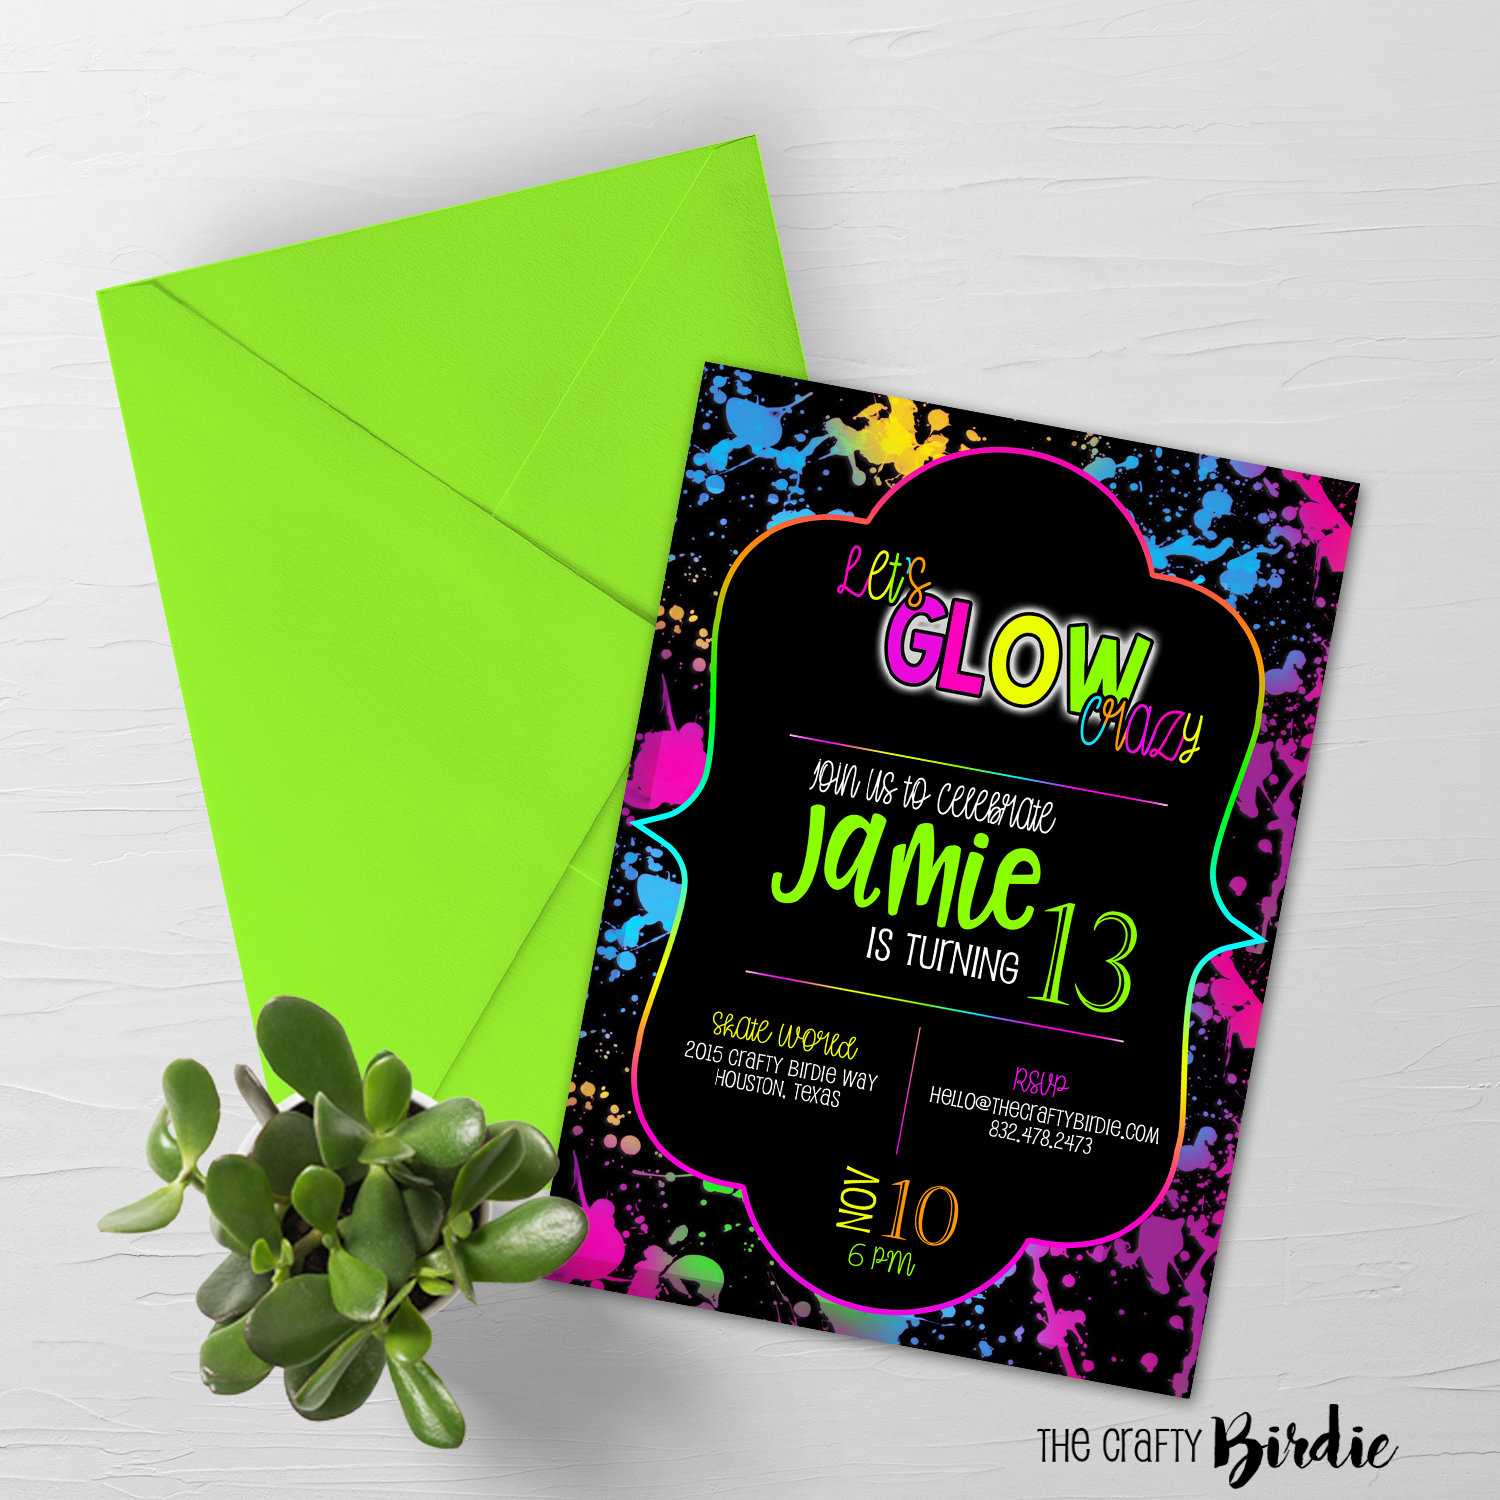 Glow Birthday Invitation Neon Glow Birthday Party Invitation | Etsy - Free Printable Glow In The Dark Birthday Party Invitations